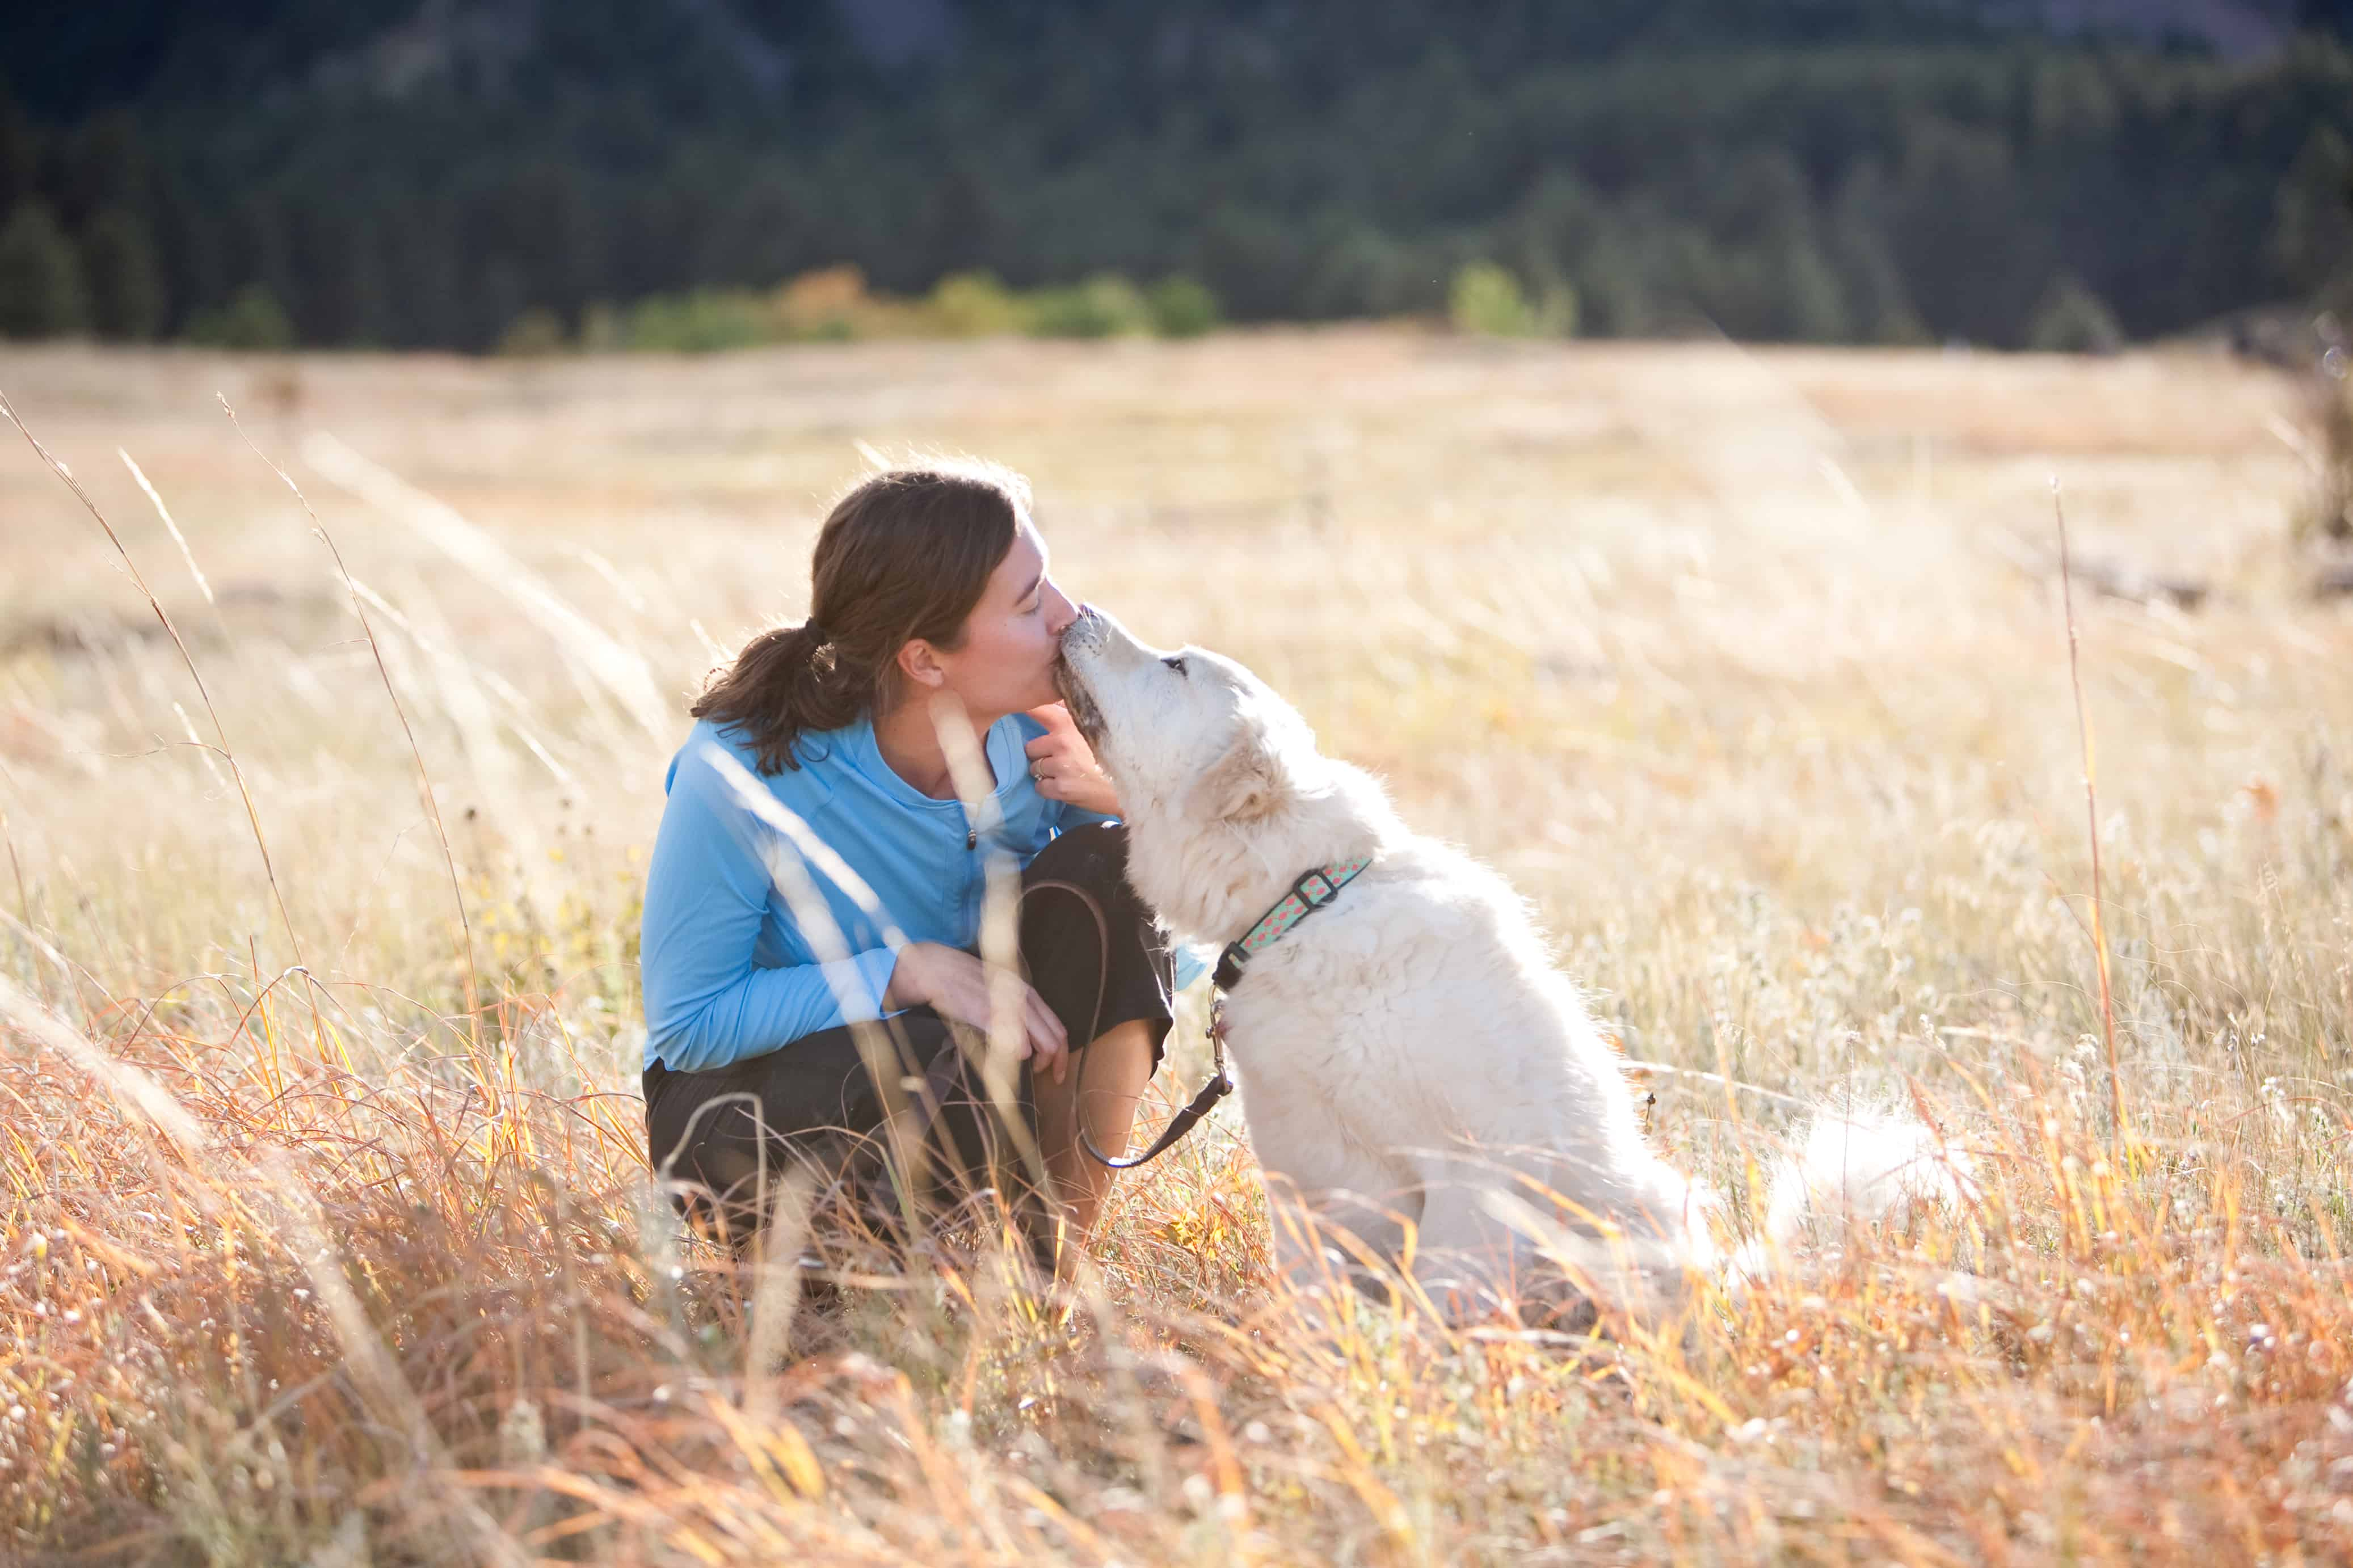 6 month dog trainer professional training program with Shelly Brouwer